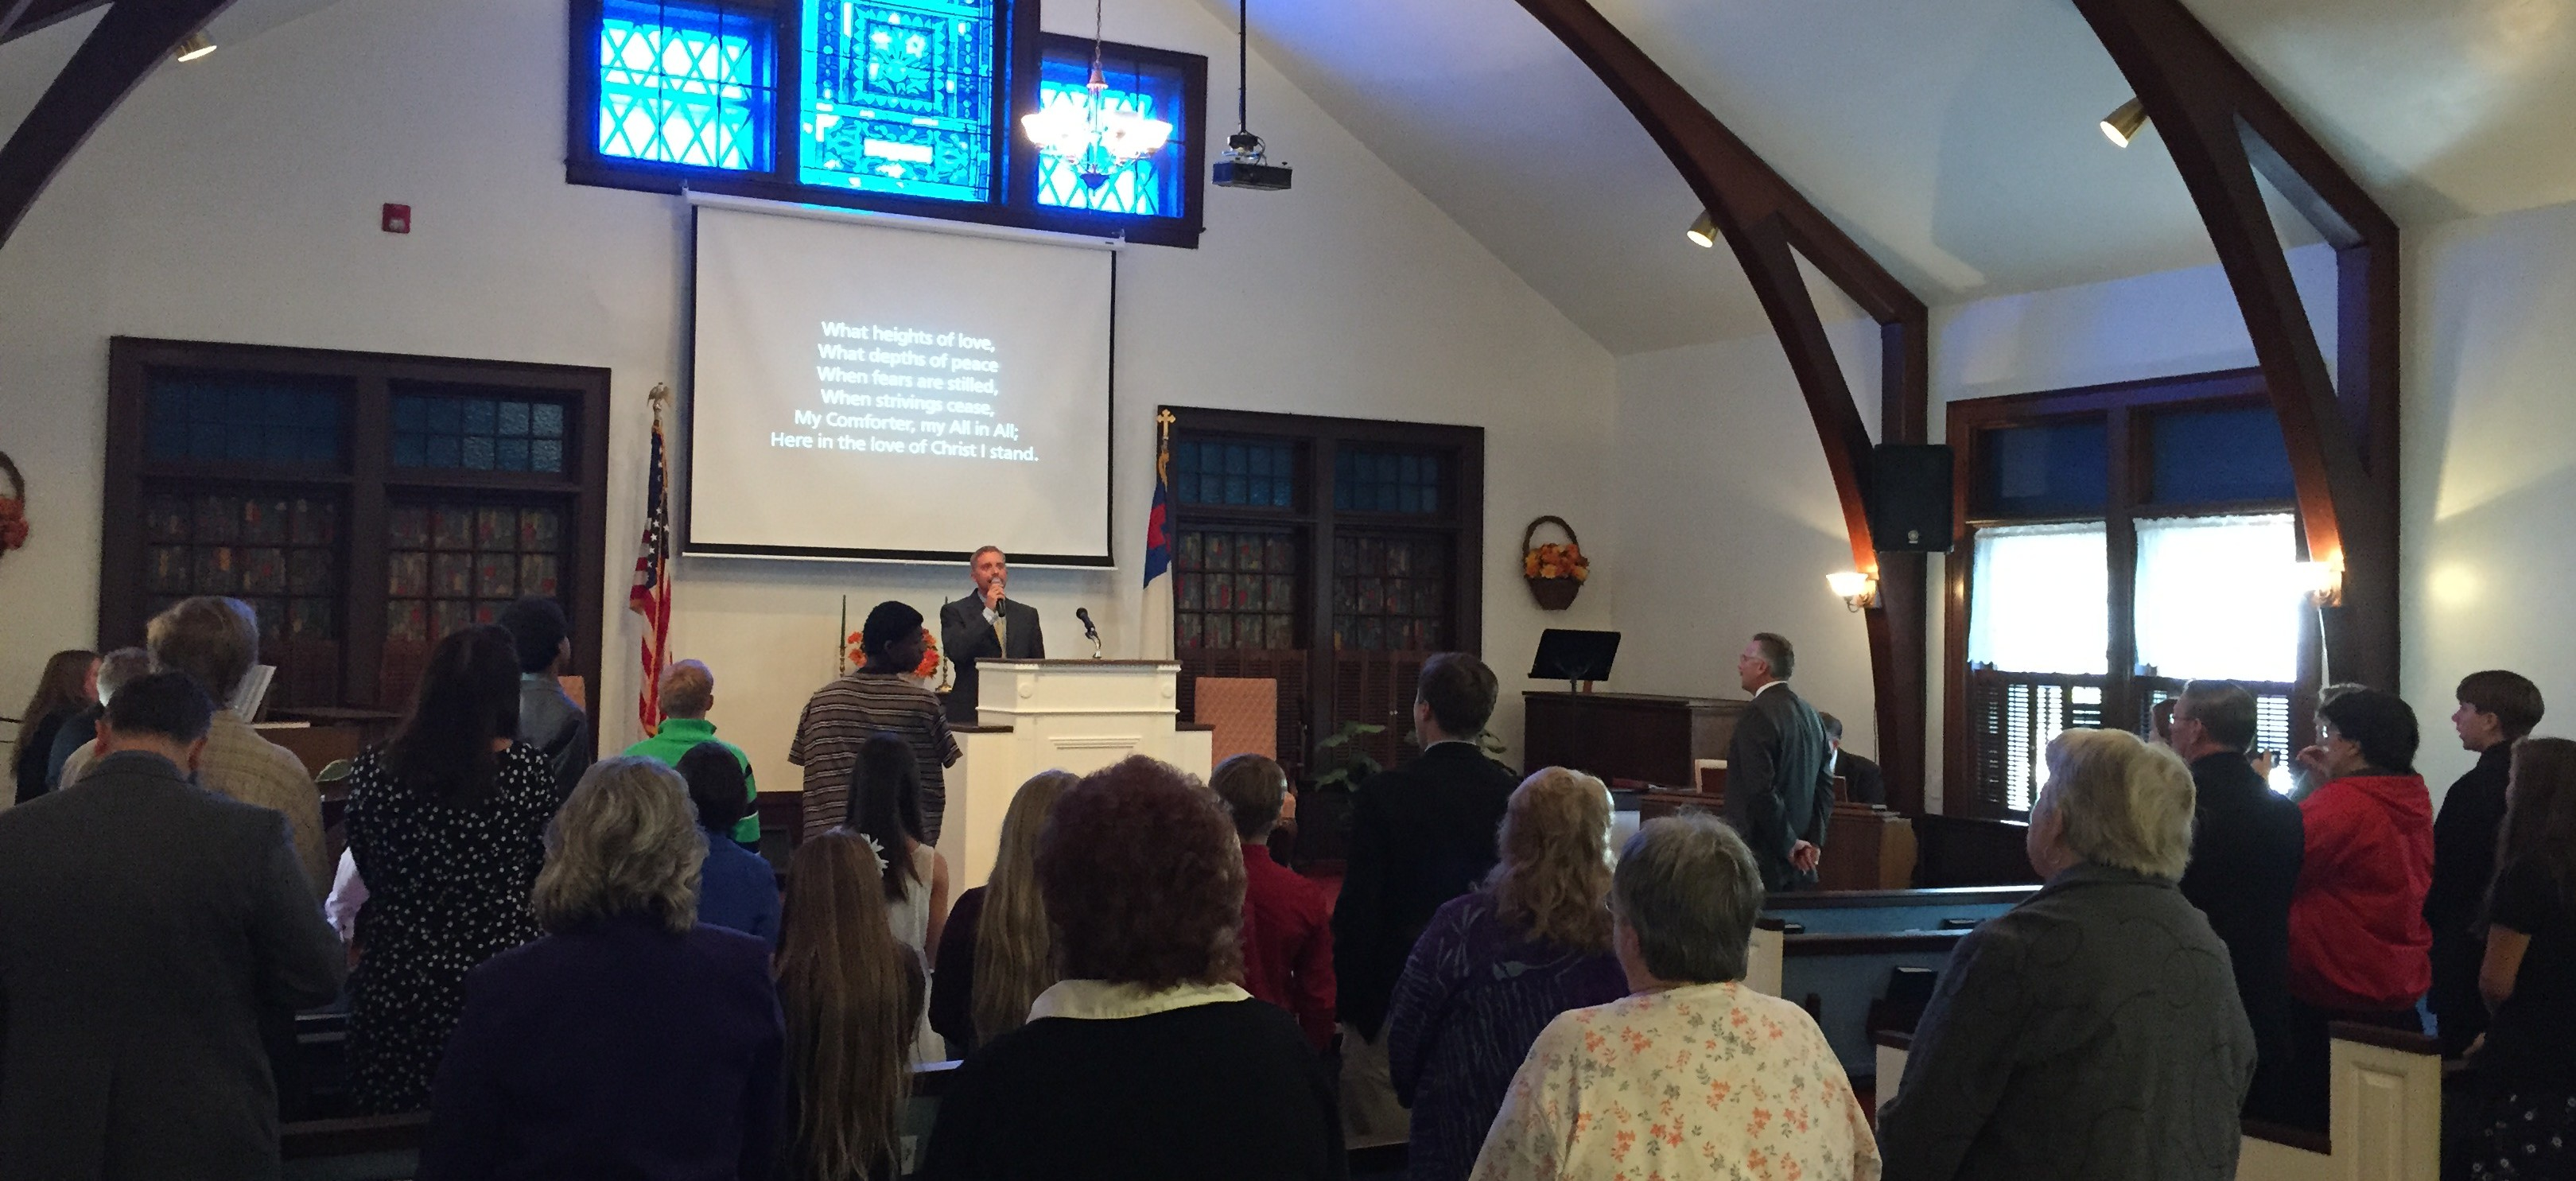 Mount Greylock Baptist Church Worship Service